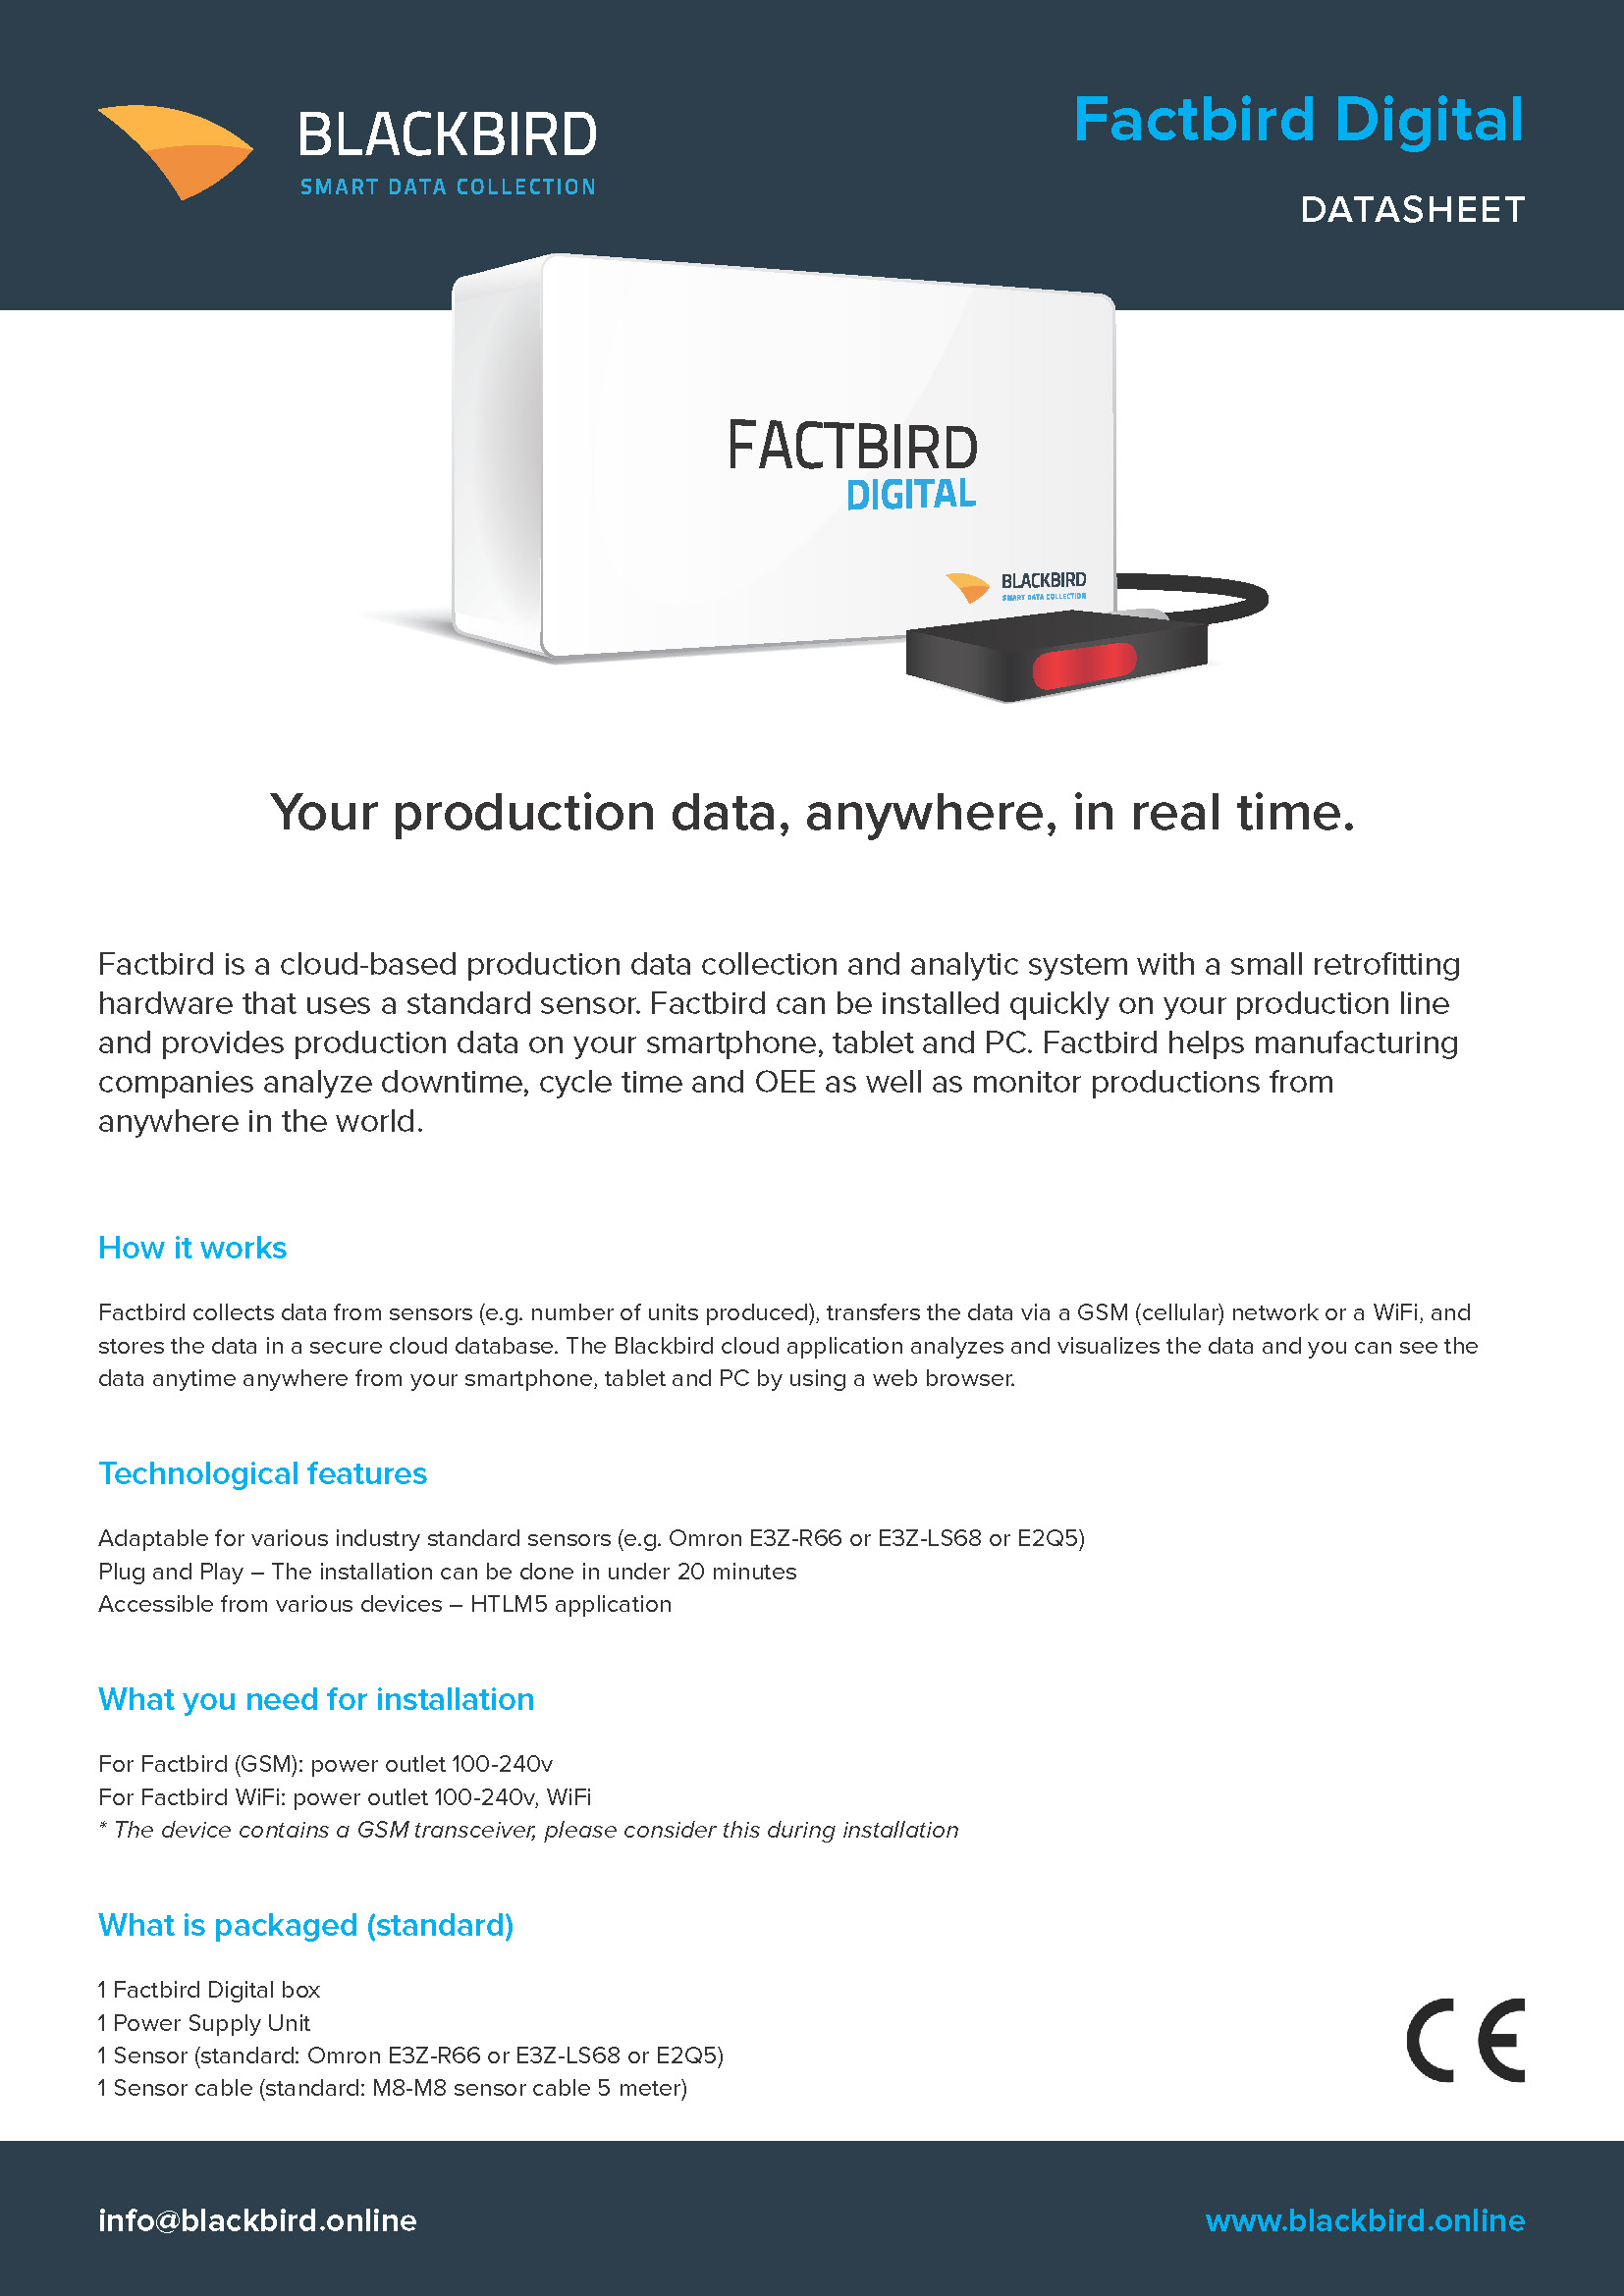 Factbird Digital Datasheet.jpg